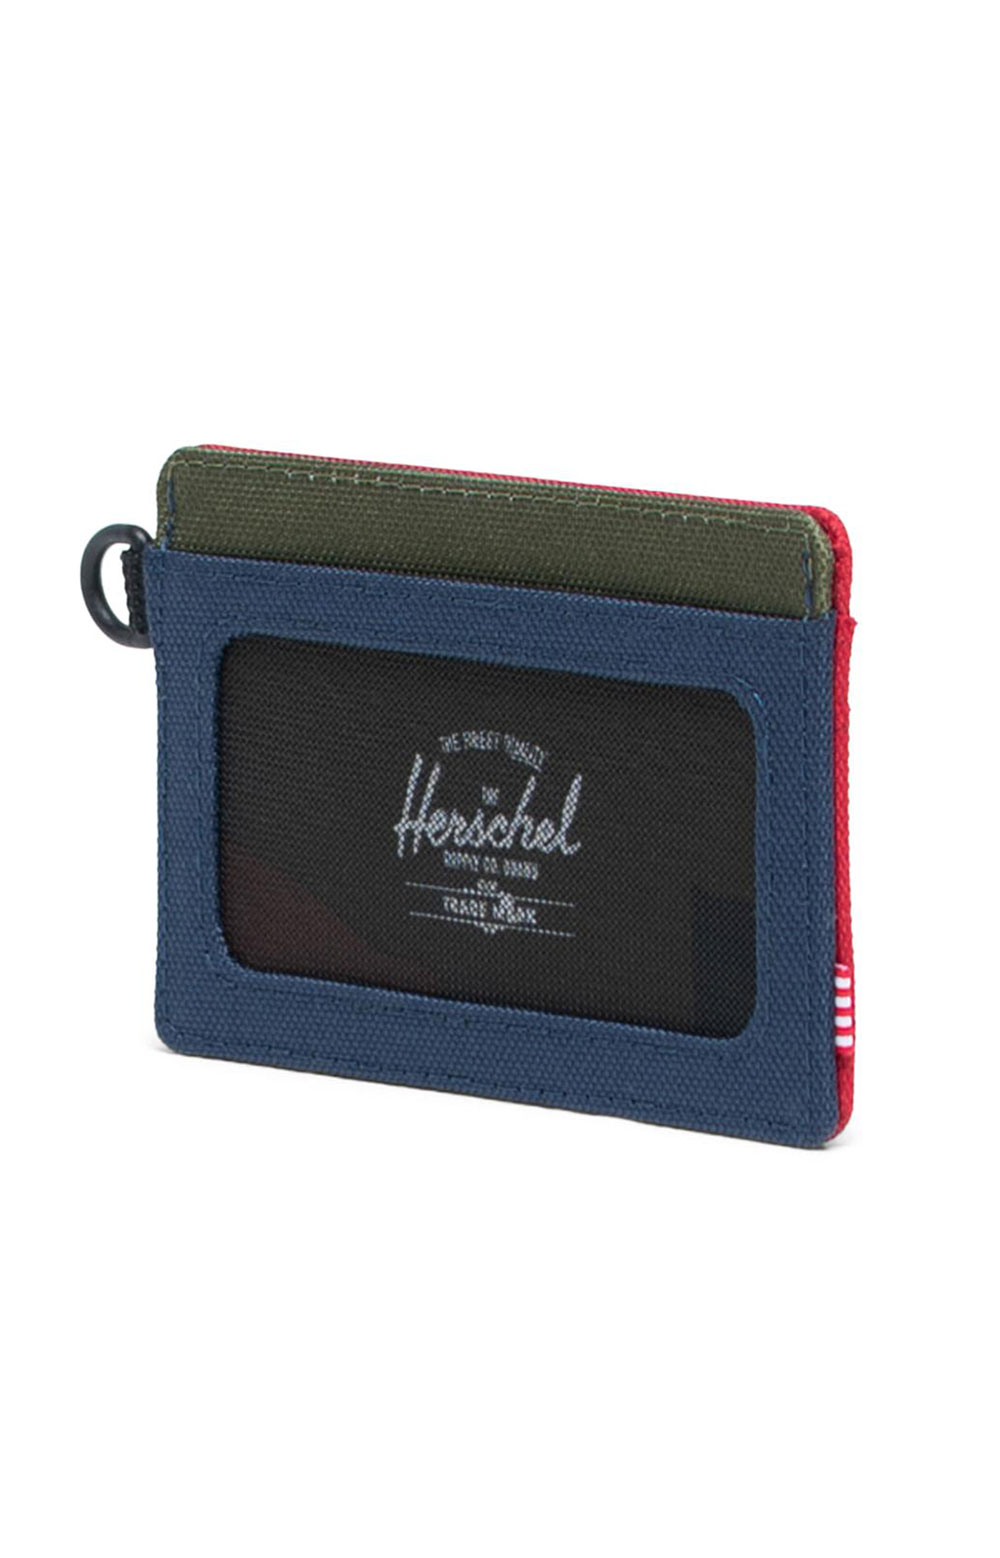 Charlie ID Wallet - Navy/Red/Woodland Camo 2